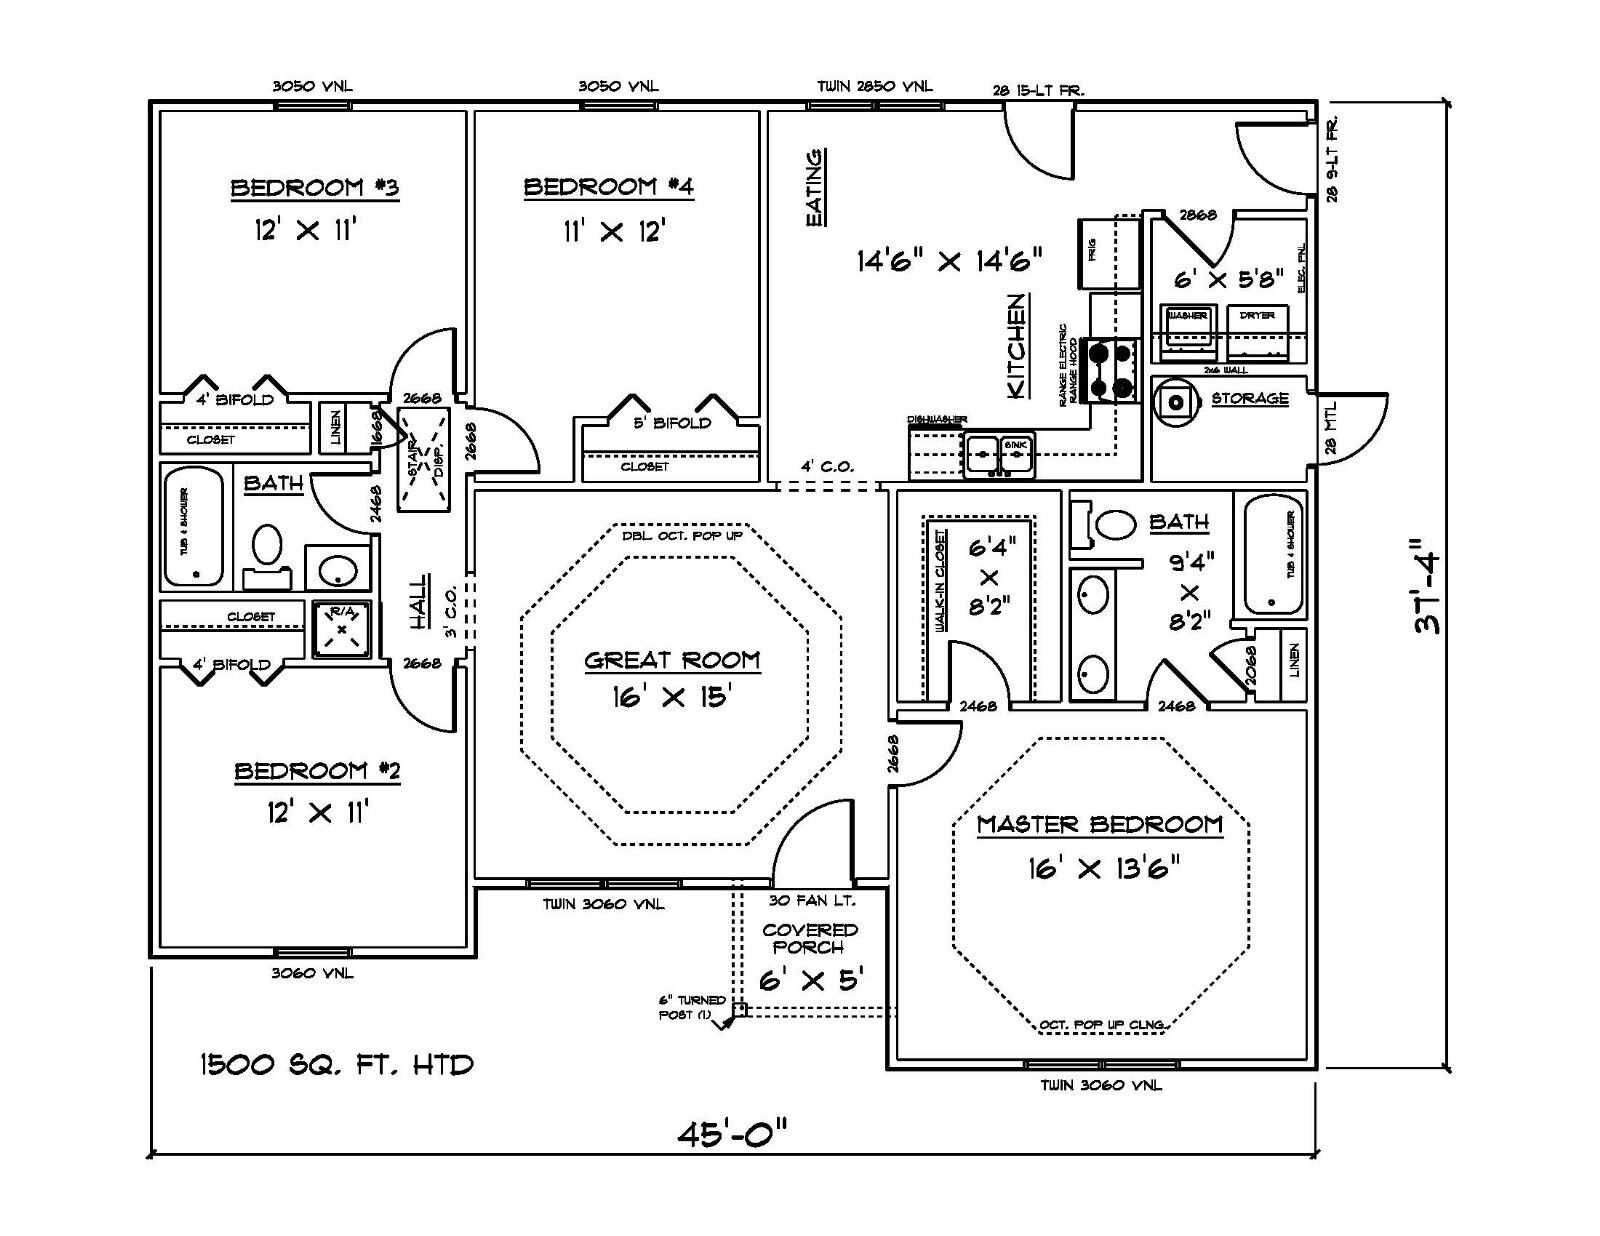 Unique house plans 1500 square feet house floor ideas for 100 sq ft bedroom layout